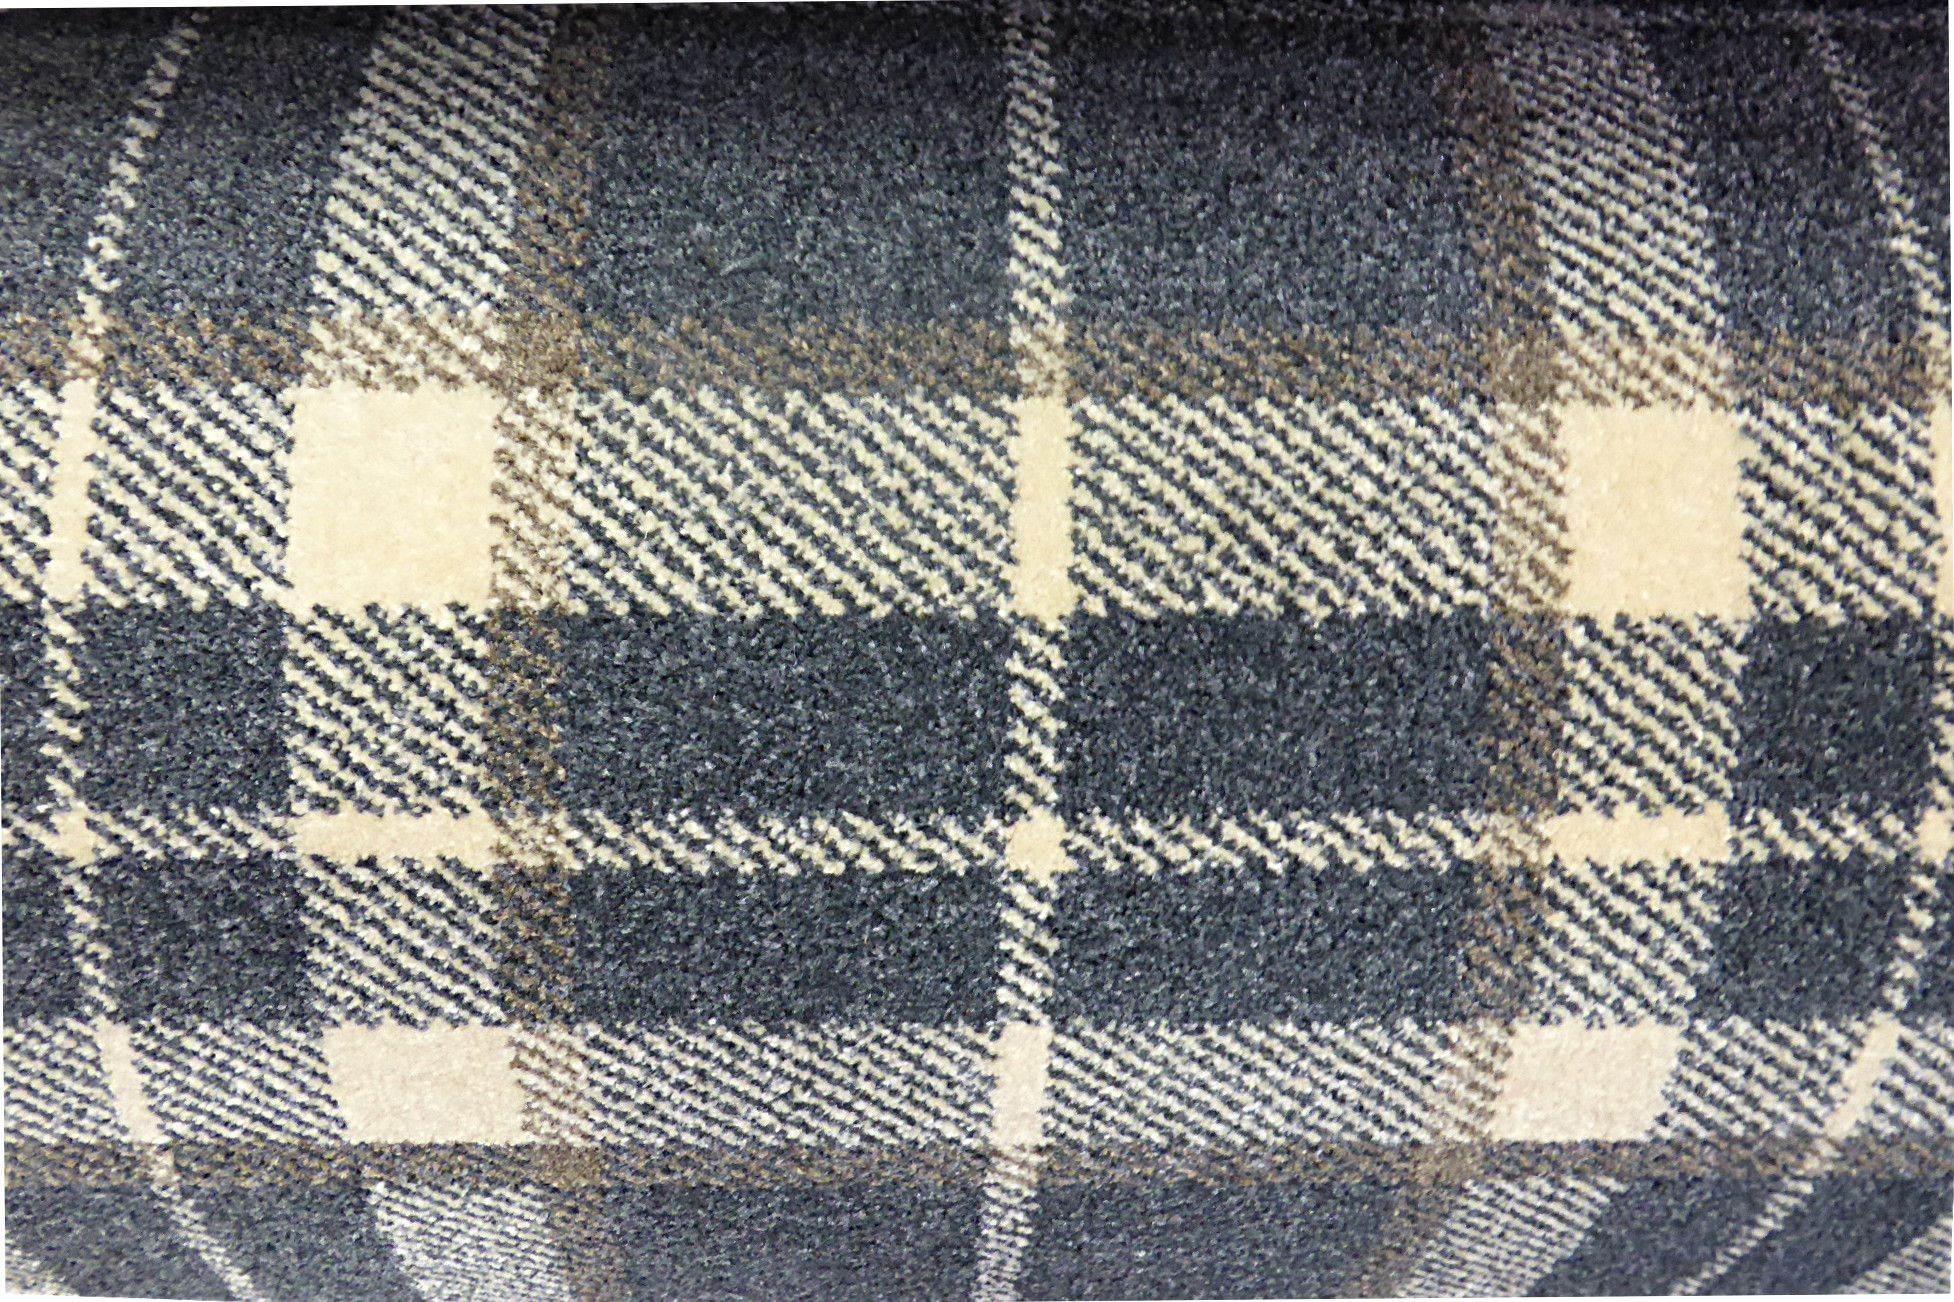 Discount Carpets And Flooring In Dundee Tartan Carpet Patterned Carpet Quality Carpets